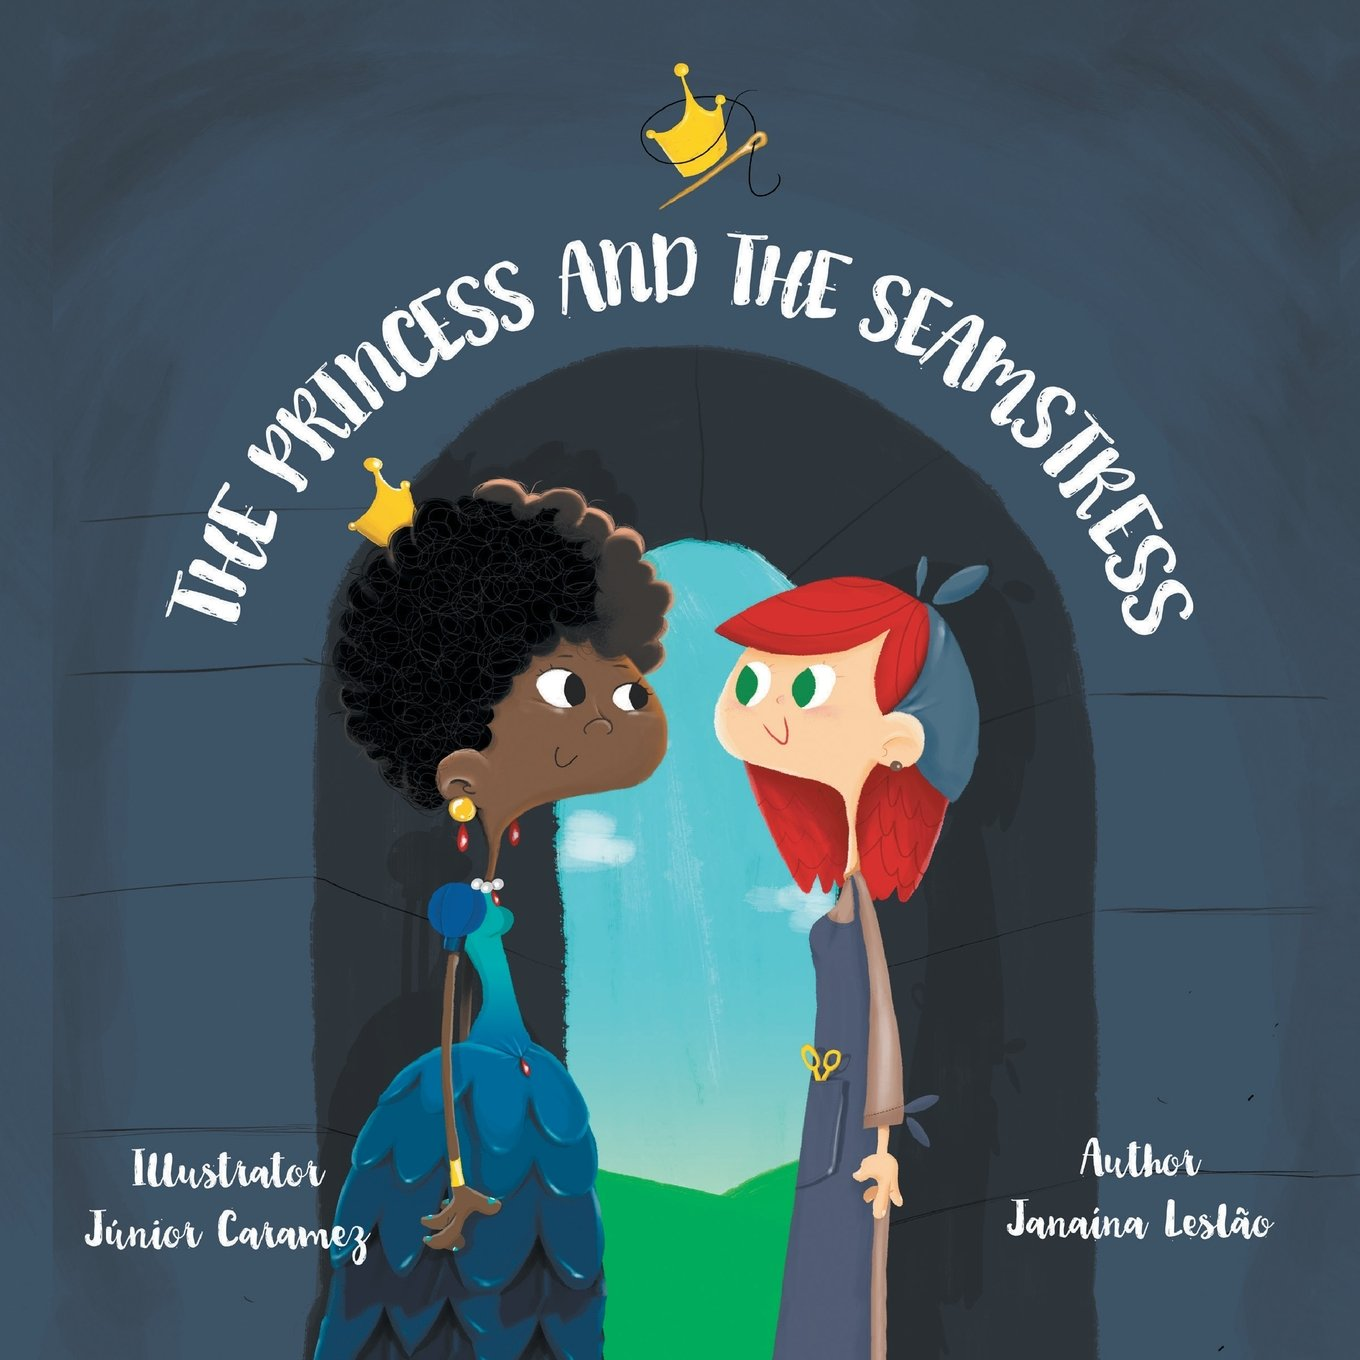 The Princess and the Seamstress